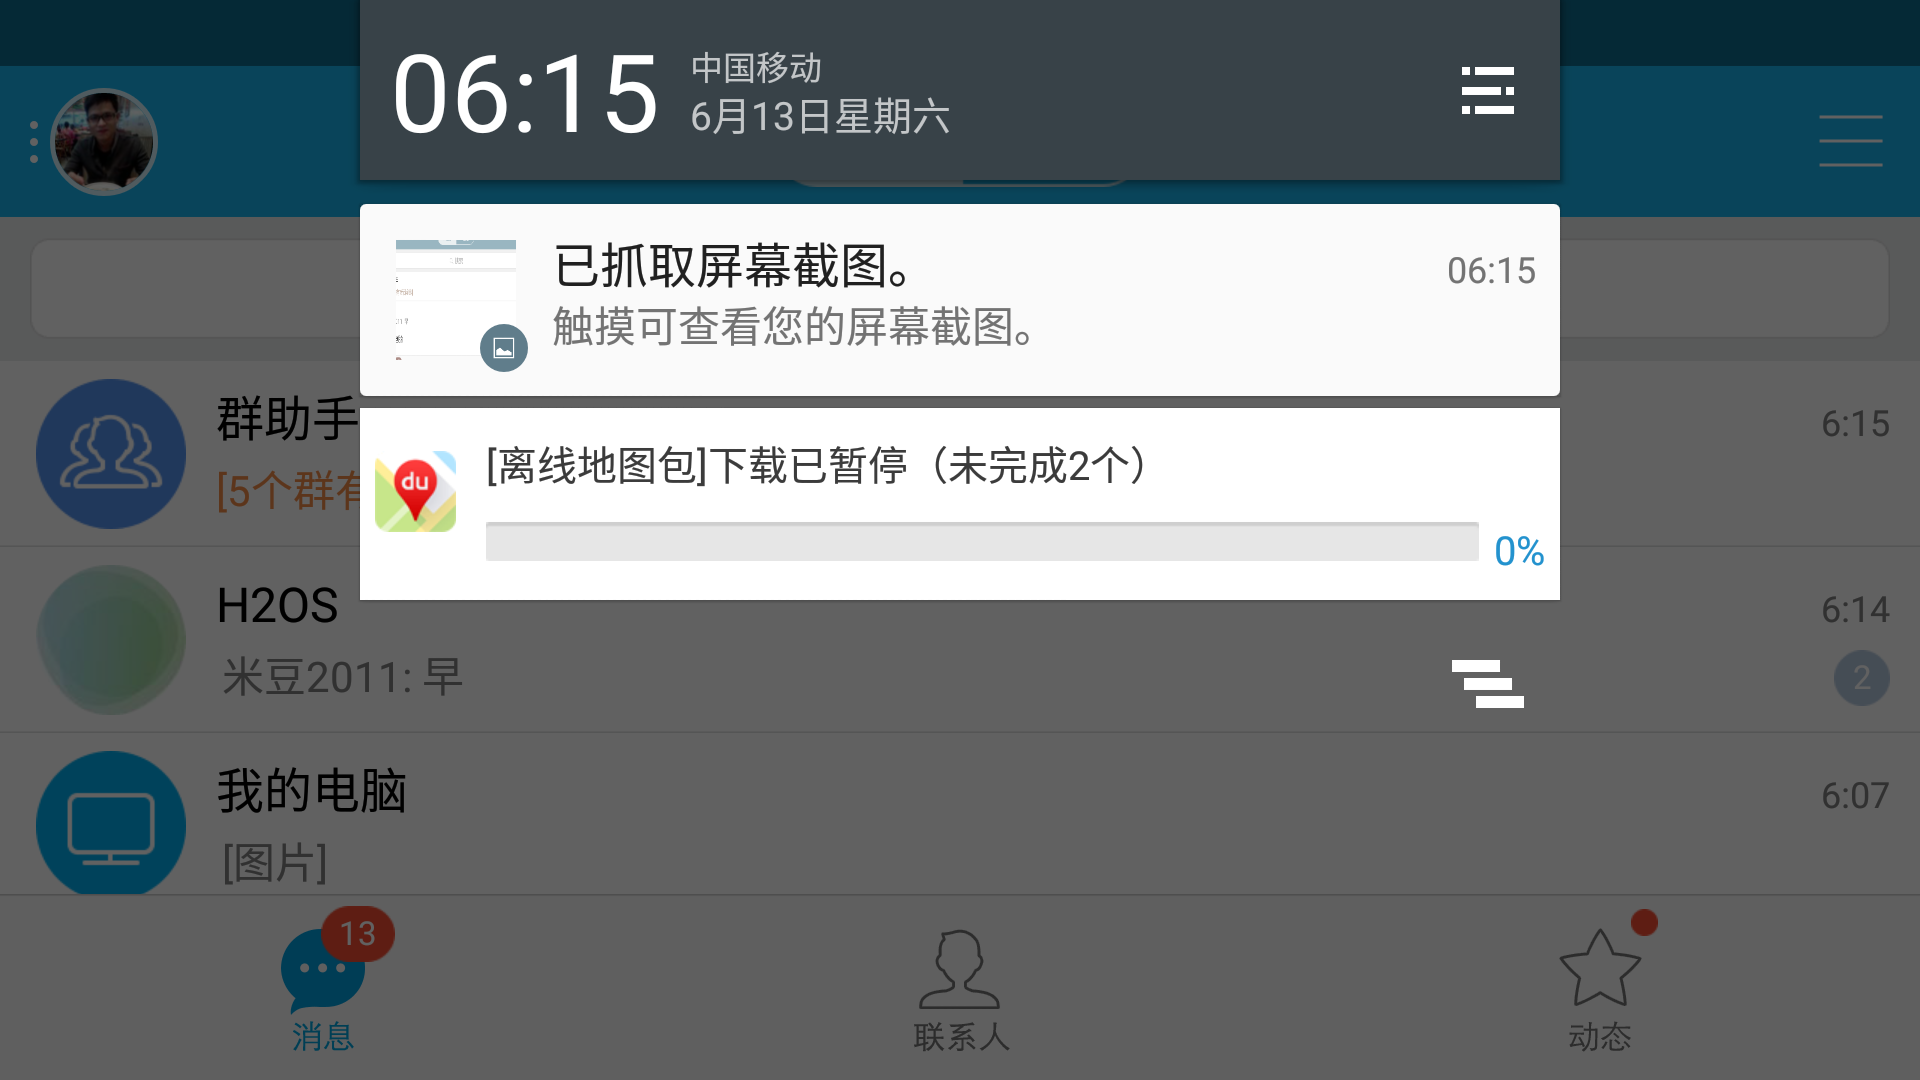 Screenshot_2015-06-13-06-15-56.png